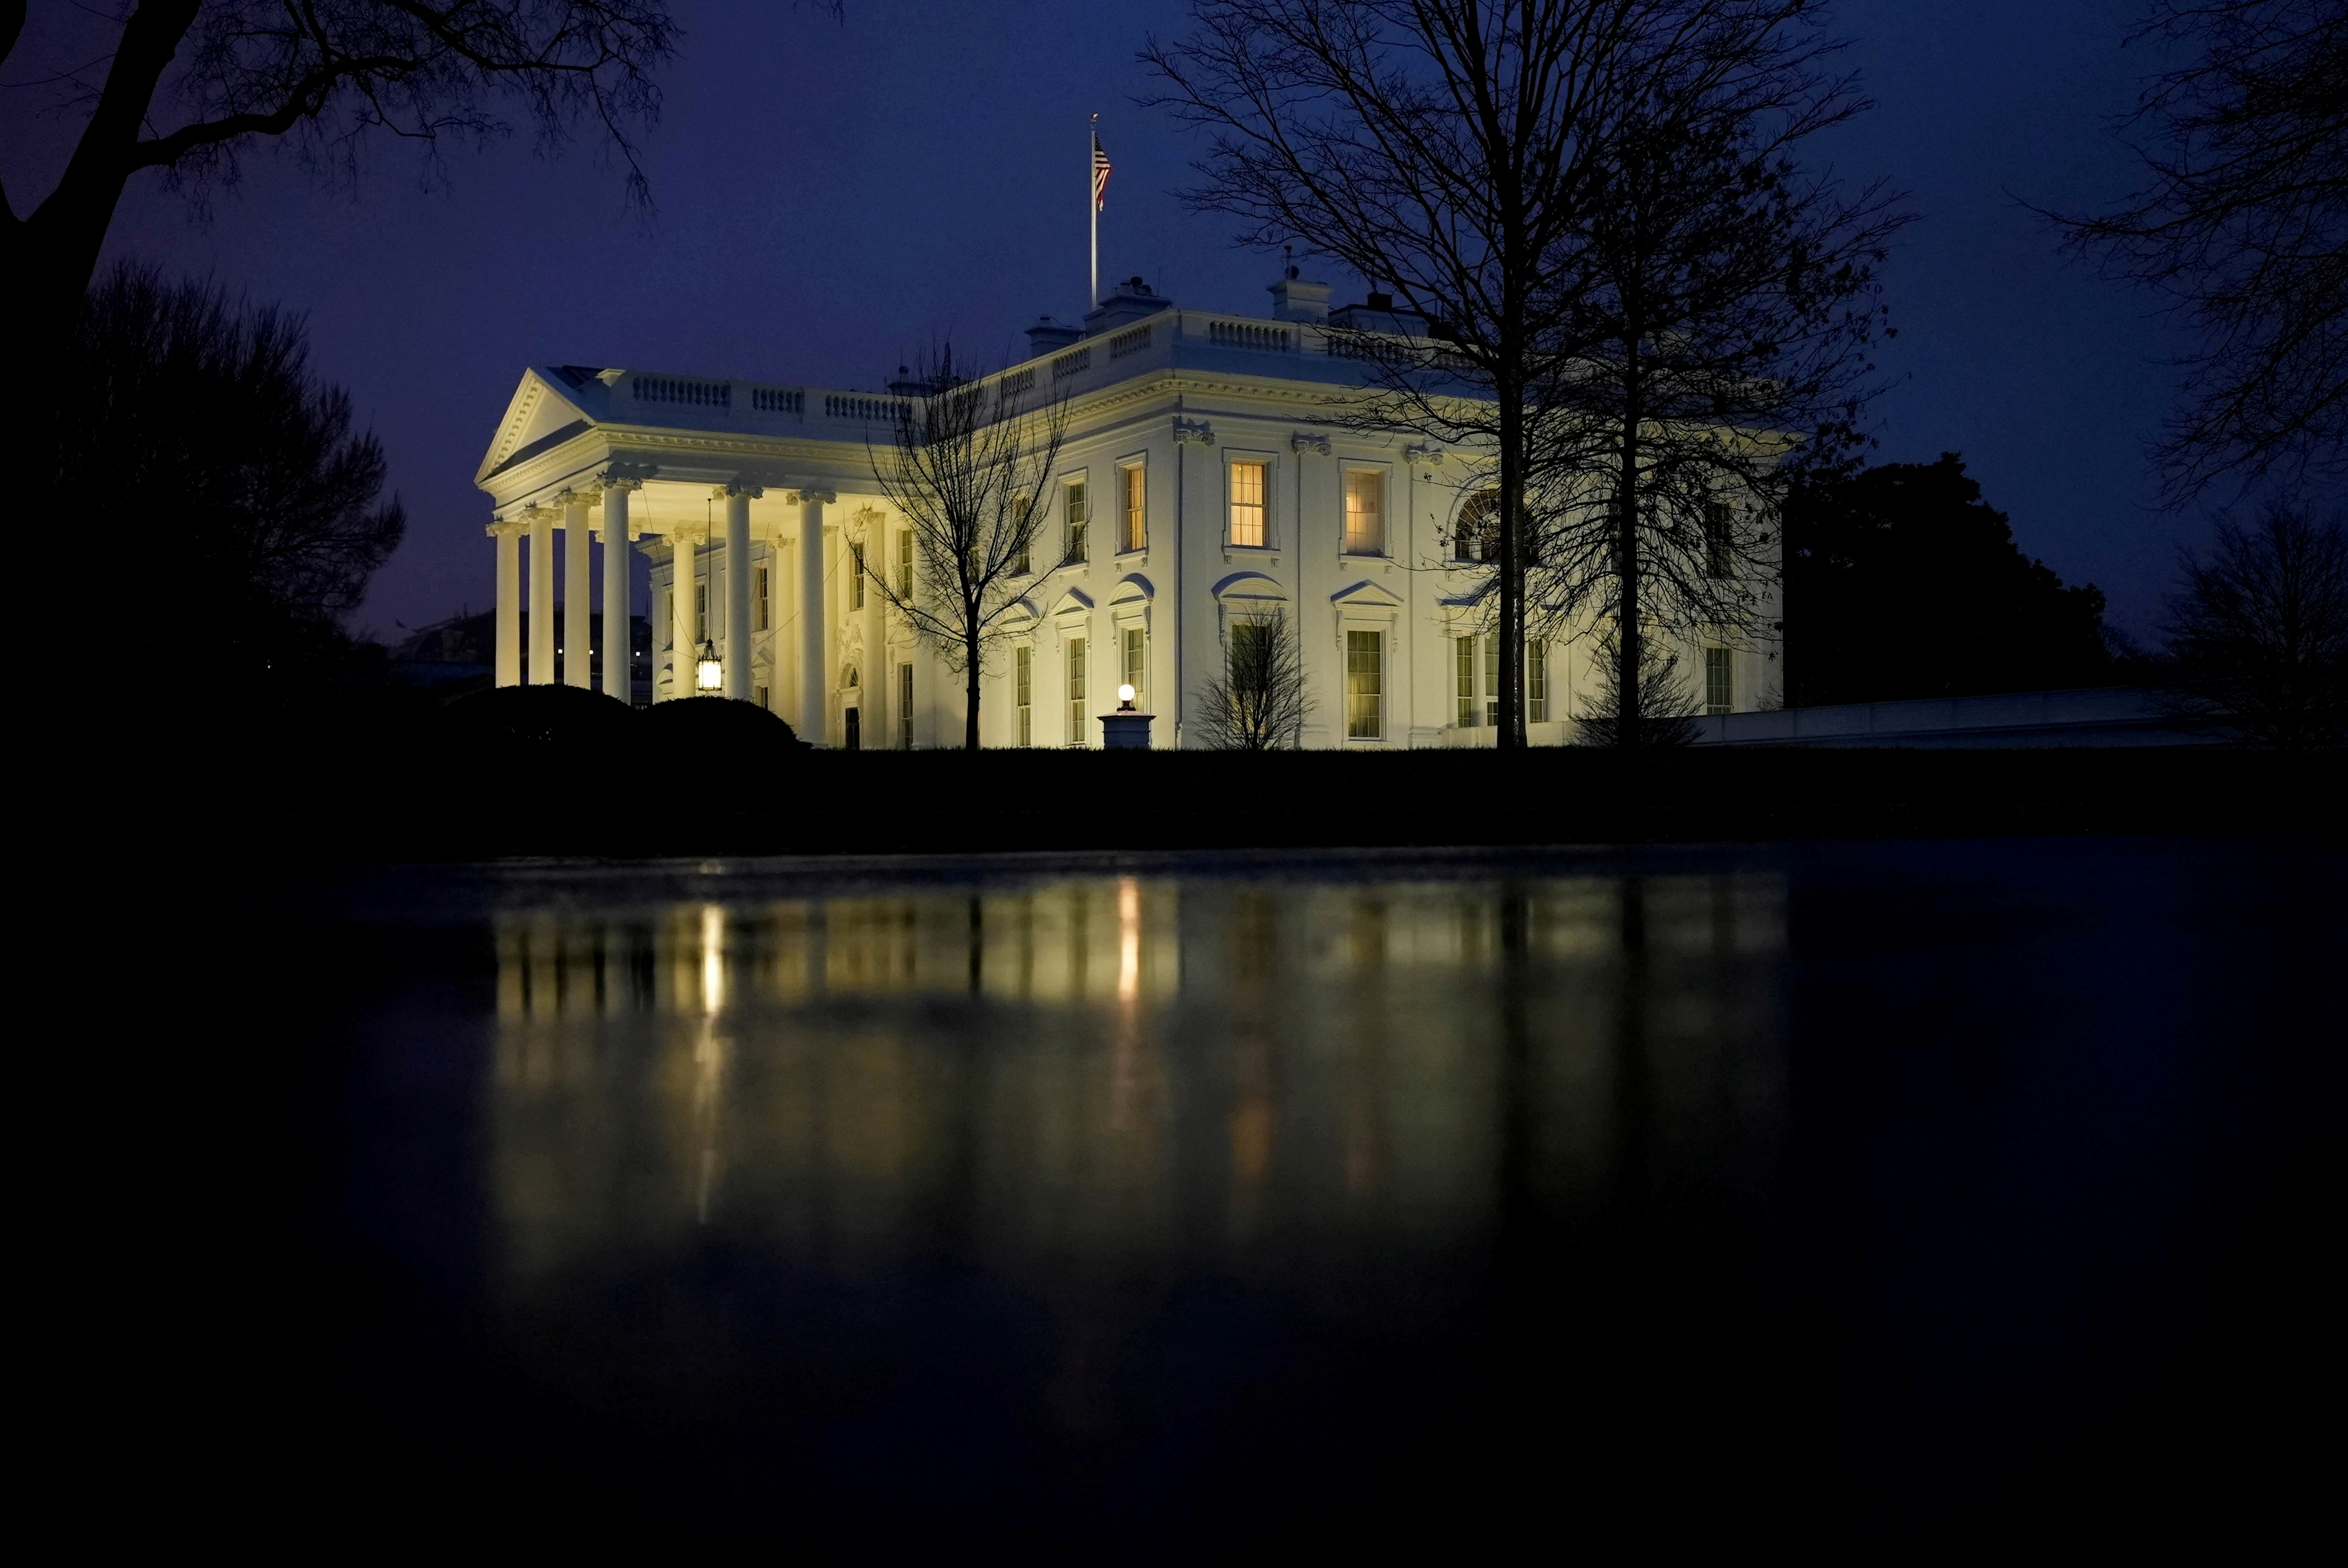 The White House is seen on the day when the Senate handed U.S. President Trump the first veto override of his presidency, passing the National Defense Authorization Act. in Washington, D.C., U.S. January 1, 2021. REUTERS/Ken Cedeno     TPX IMAGES OF THE DAY/File Photo